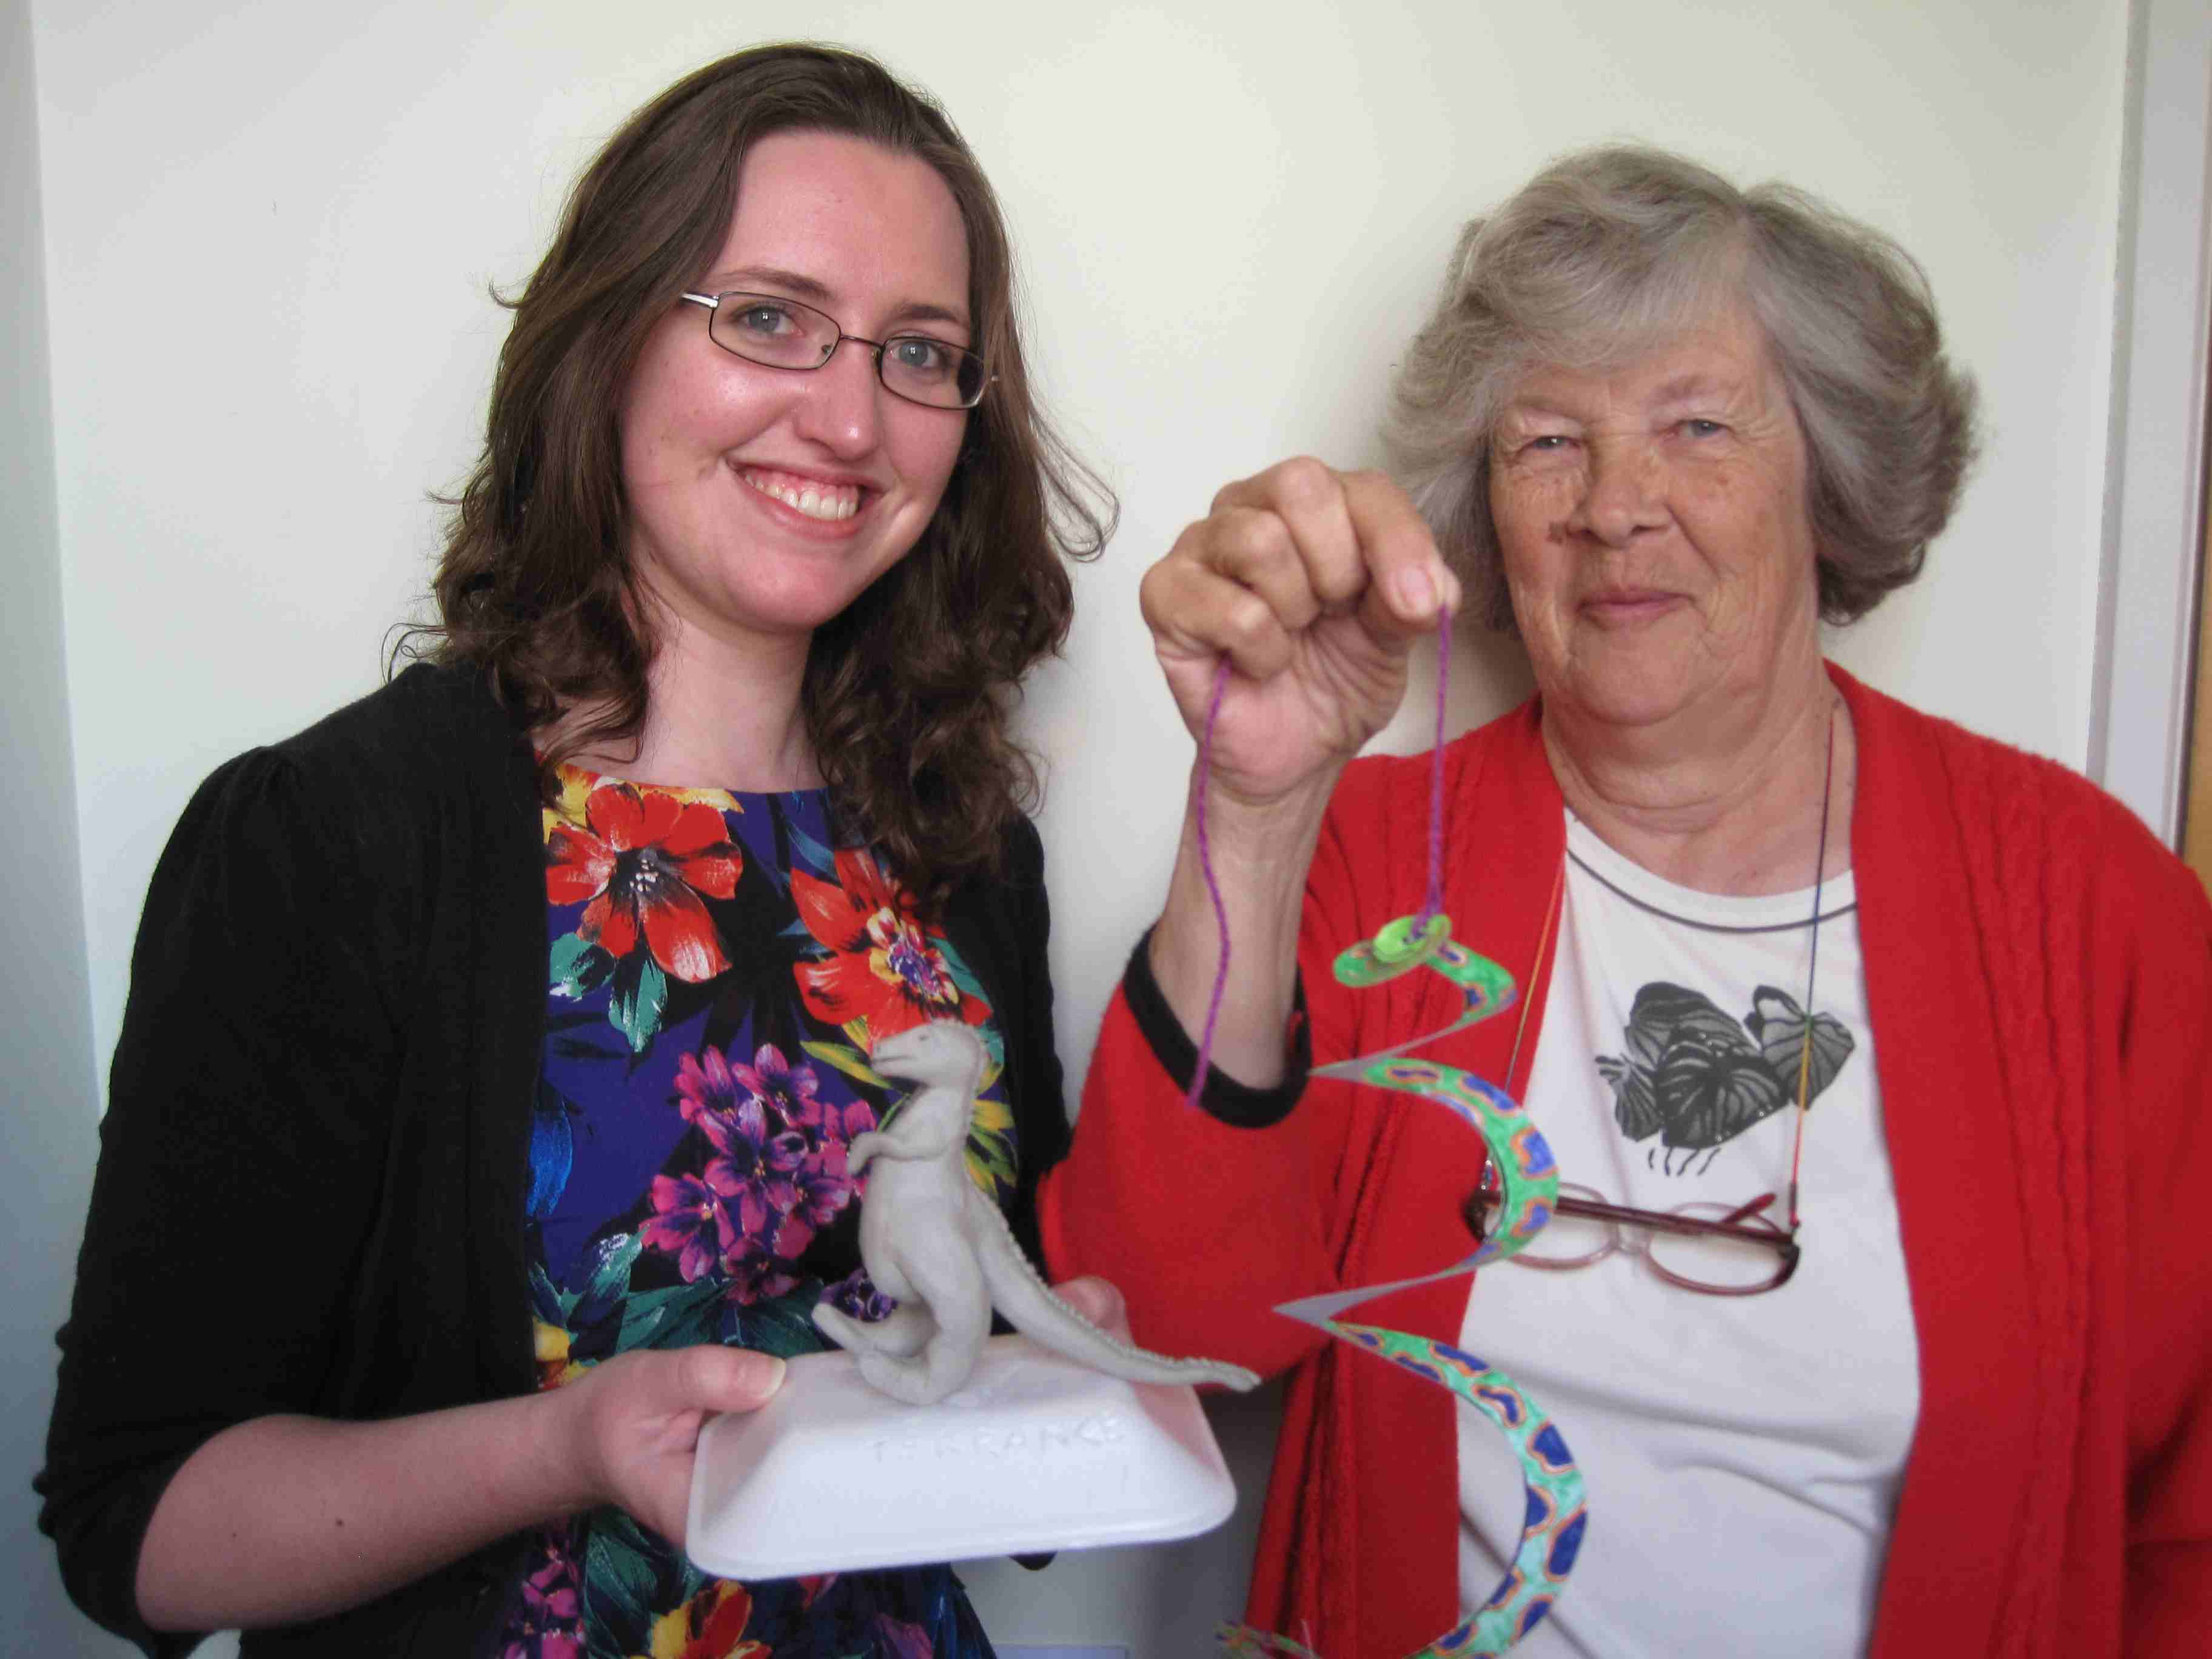 Beth Broadway and Diana Foster, Museum Volunteers, supervising this week's dinosaur themed craft activity sessions